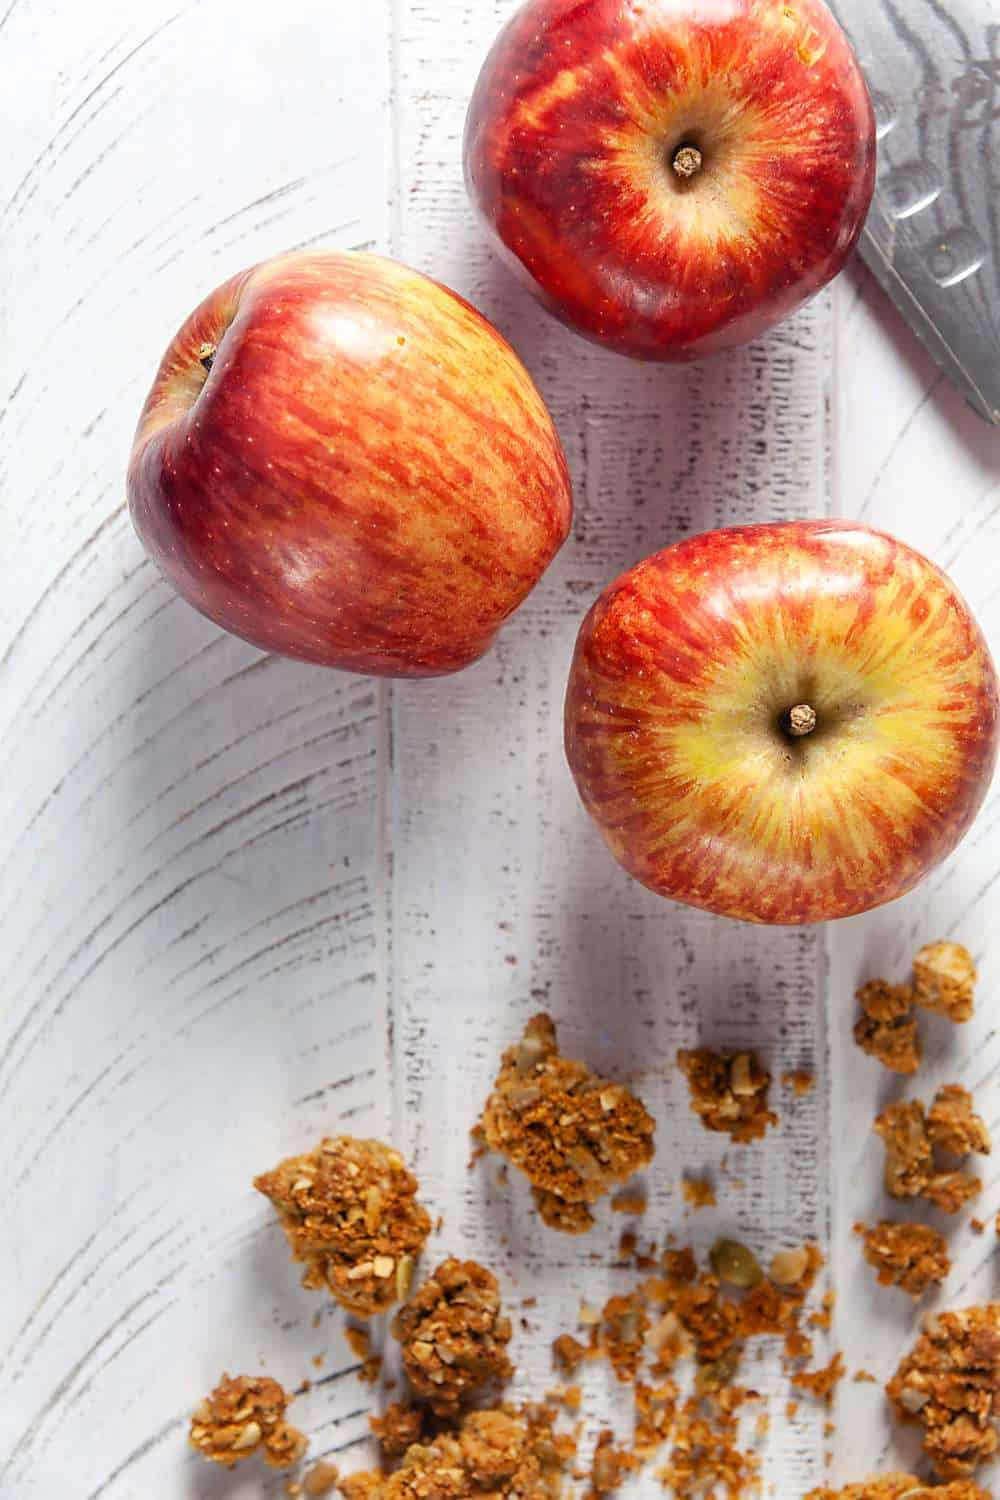 Apple Crisp Ingredients